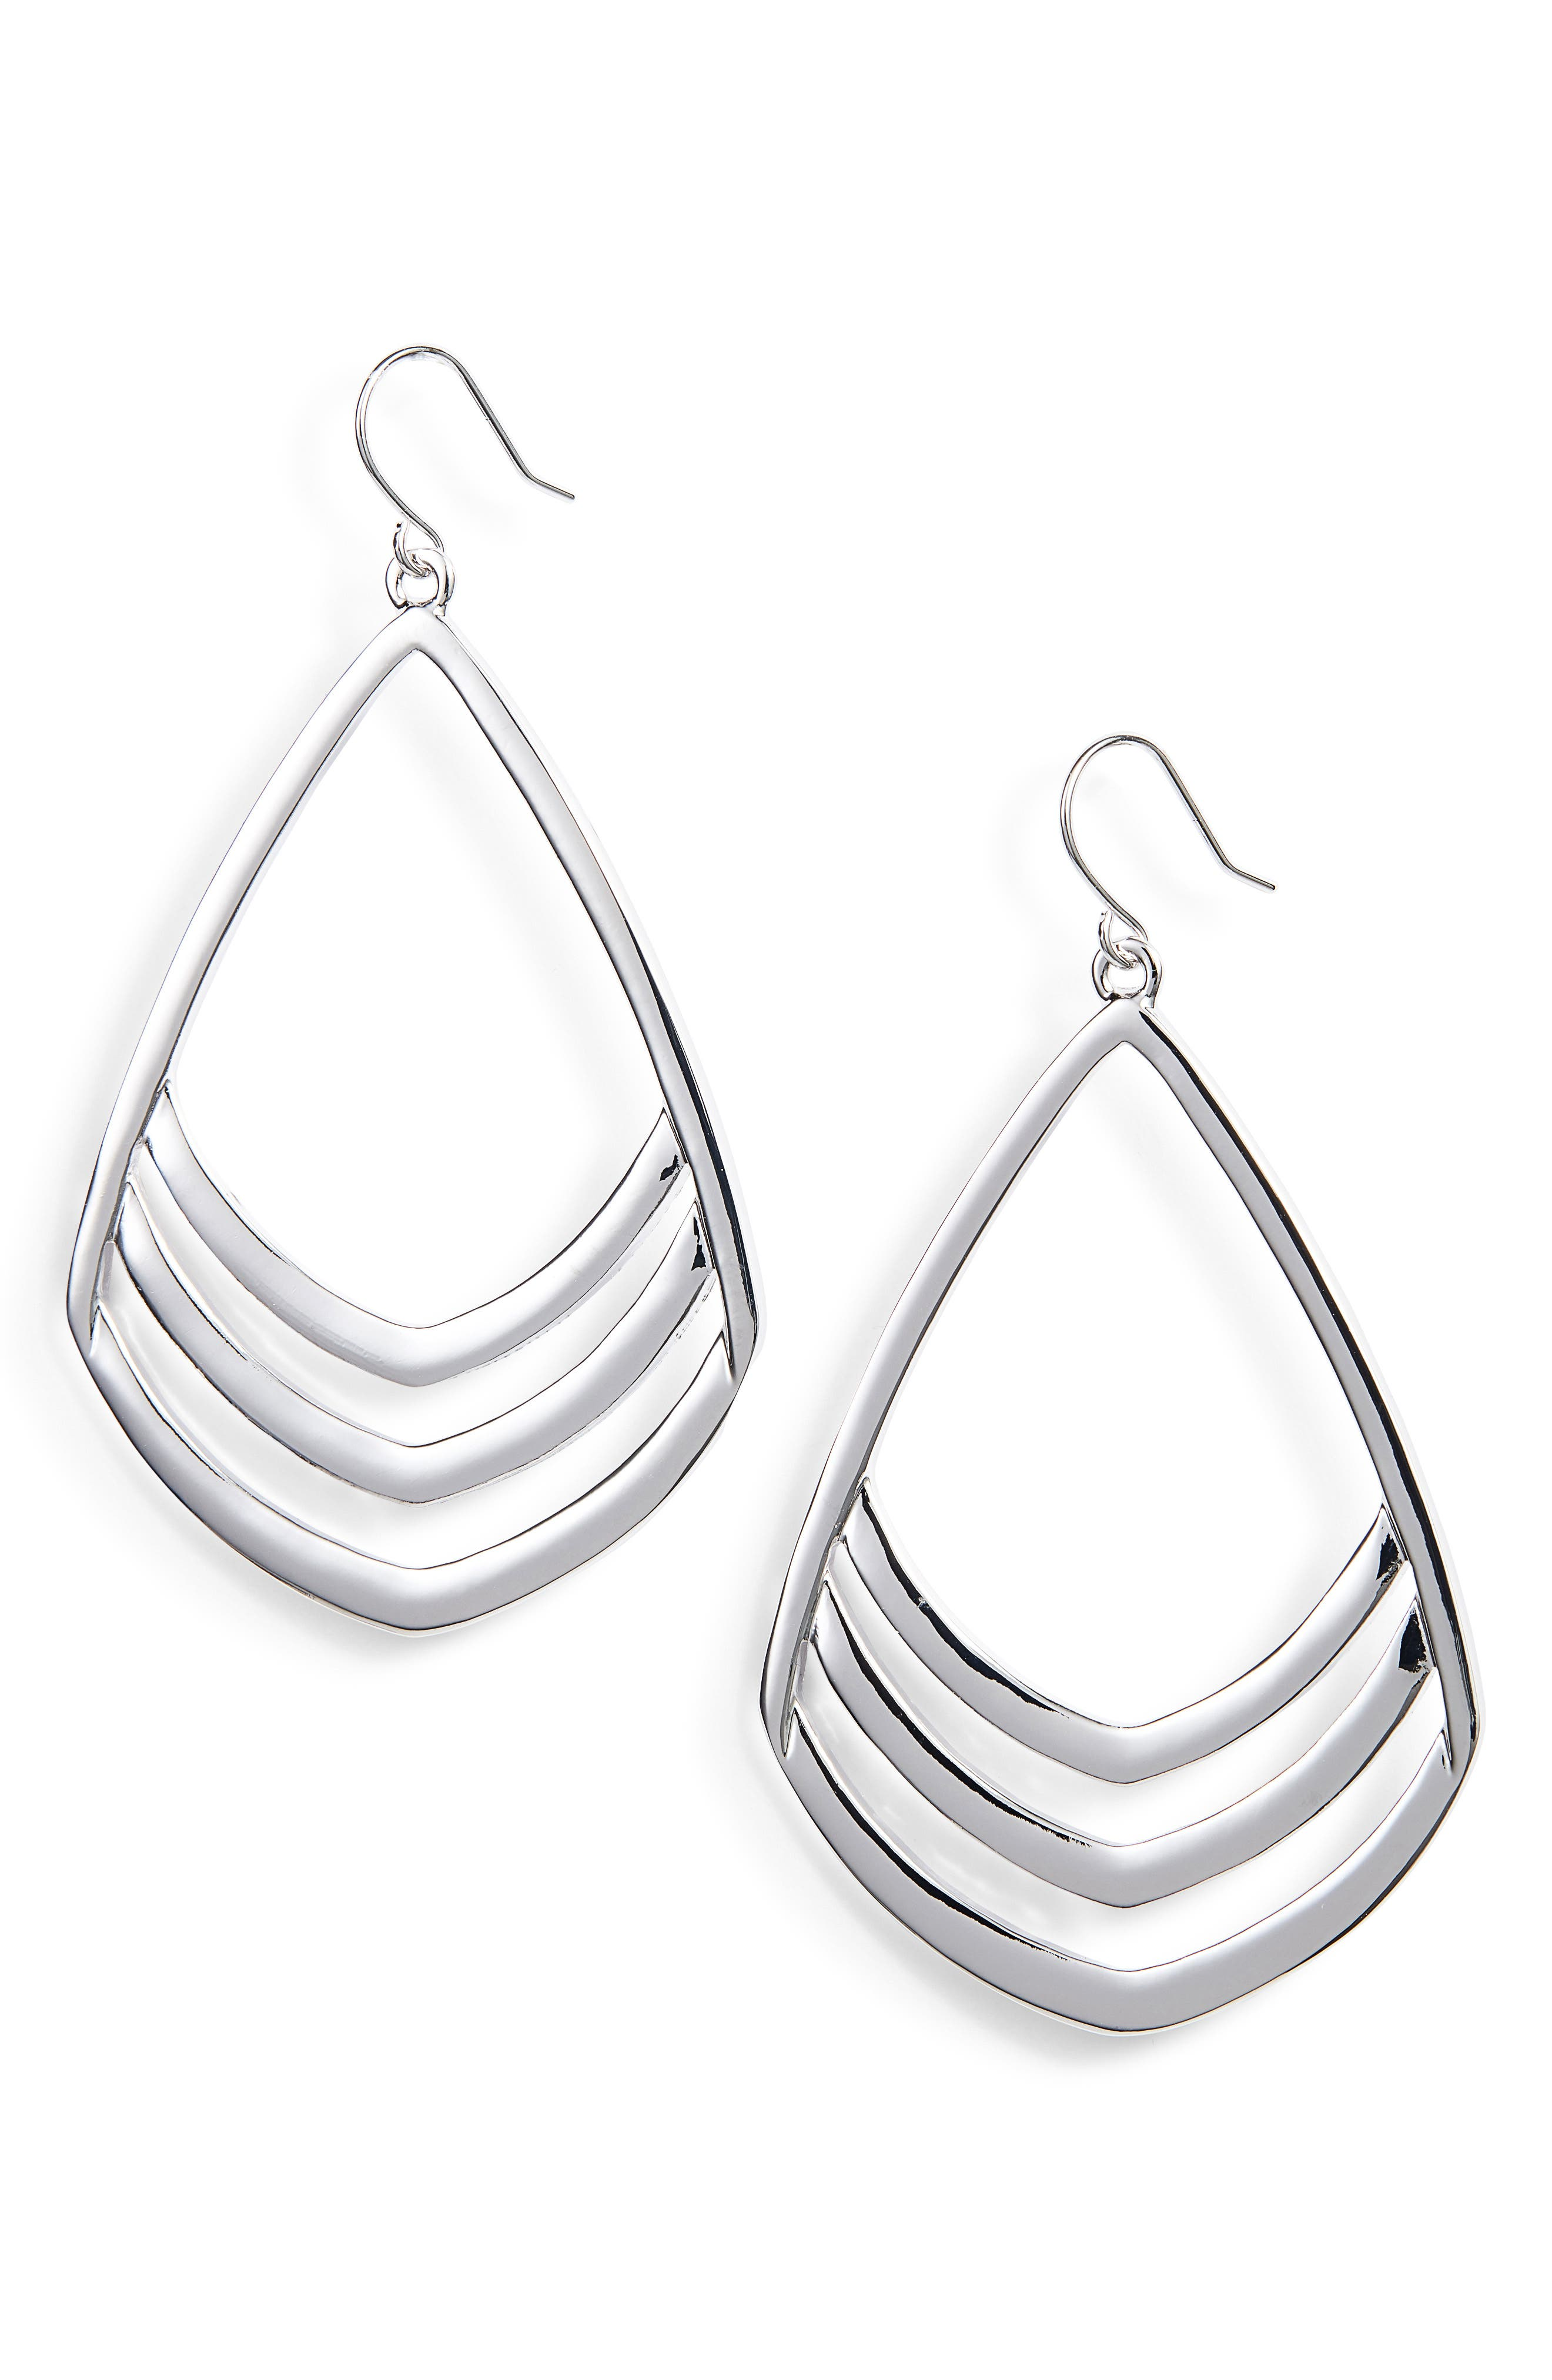 Pear Drop Earrings,                             Main thumbnail 1, color,                             Silver